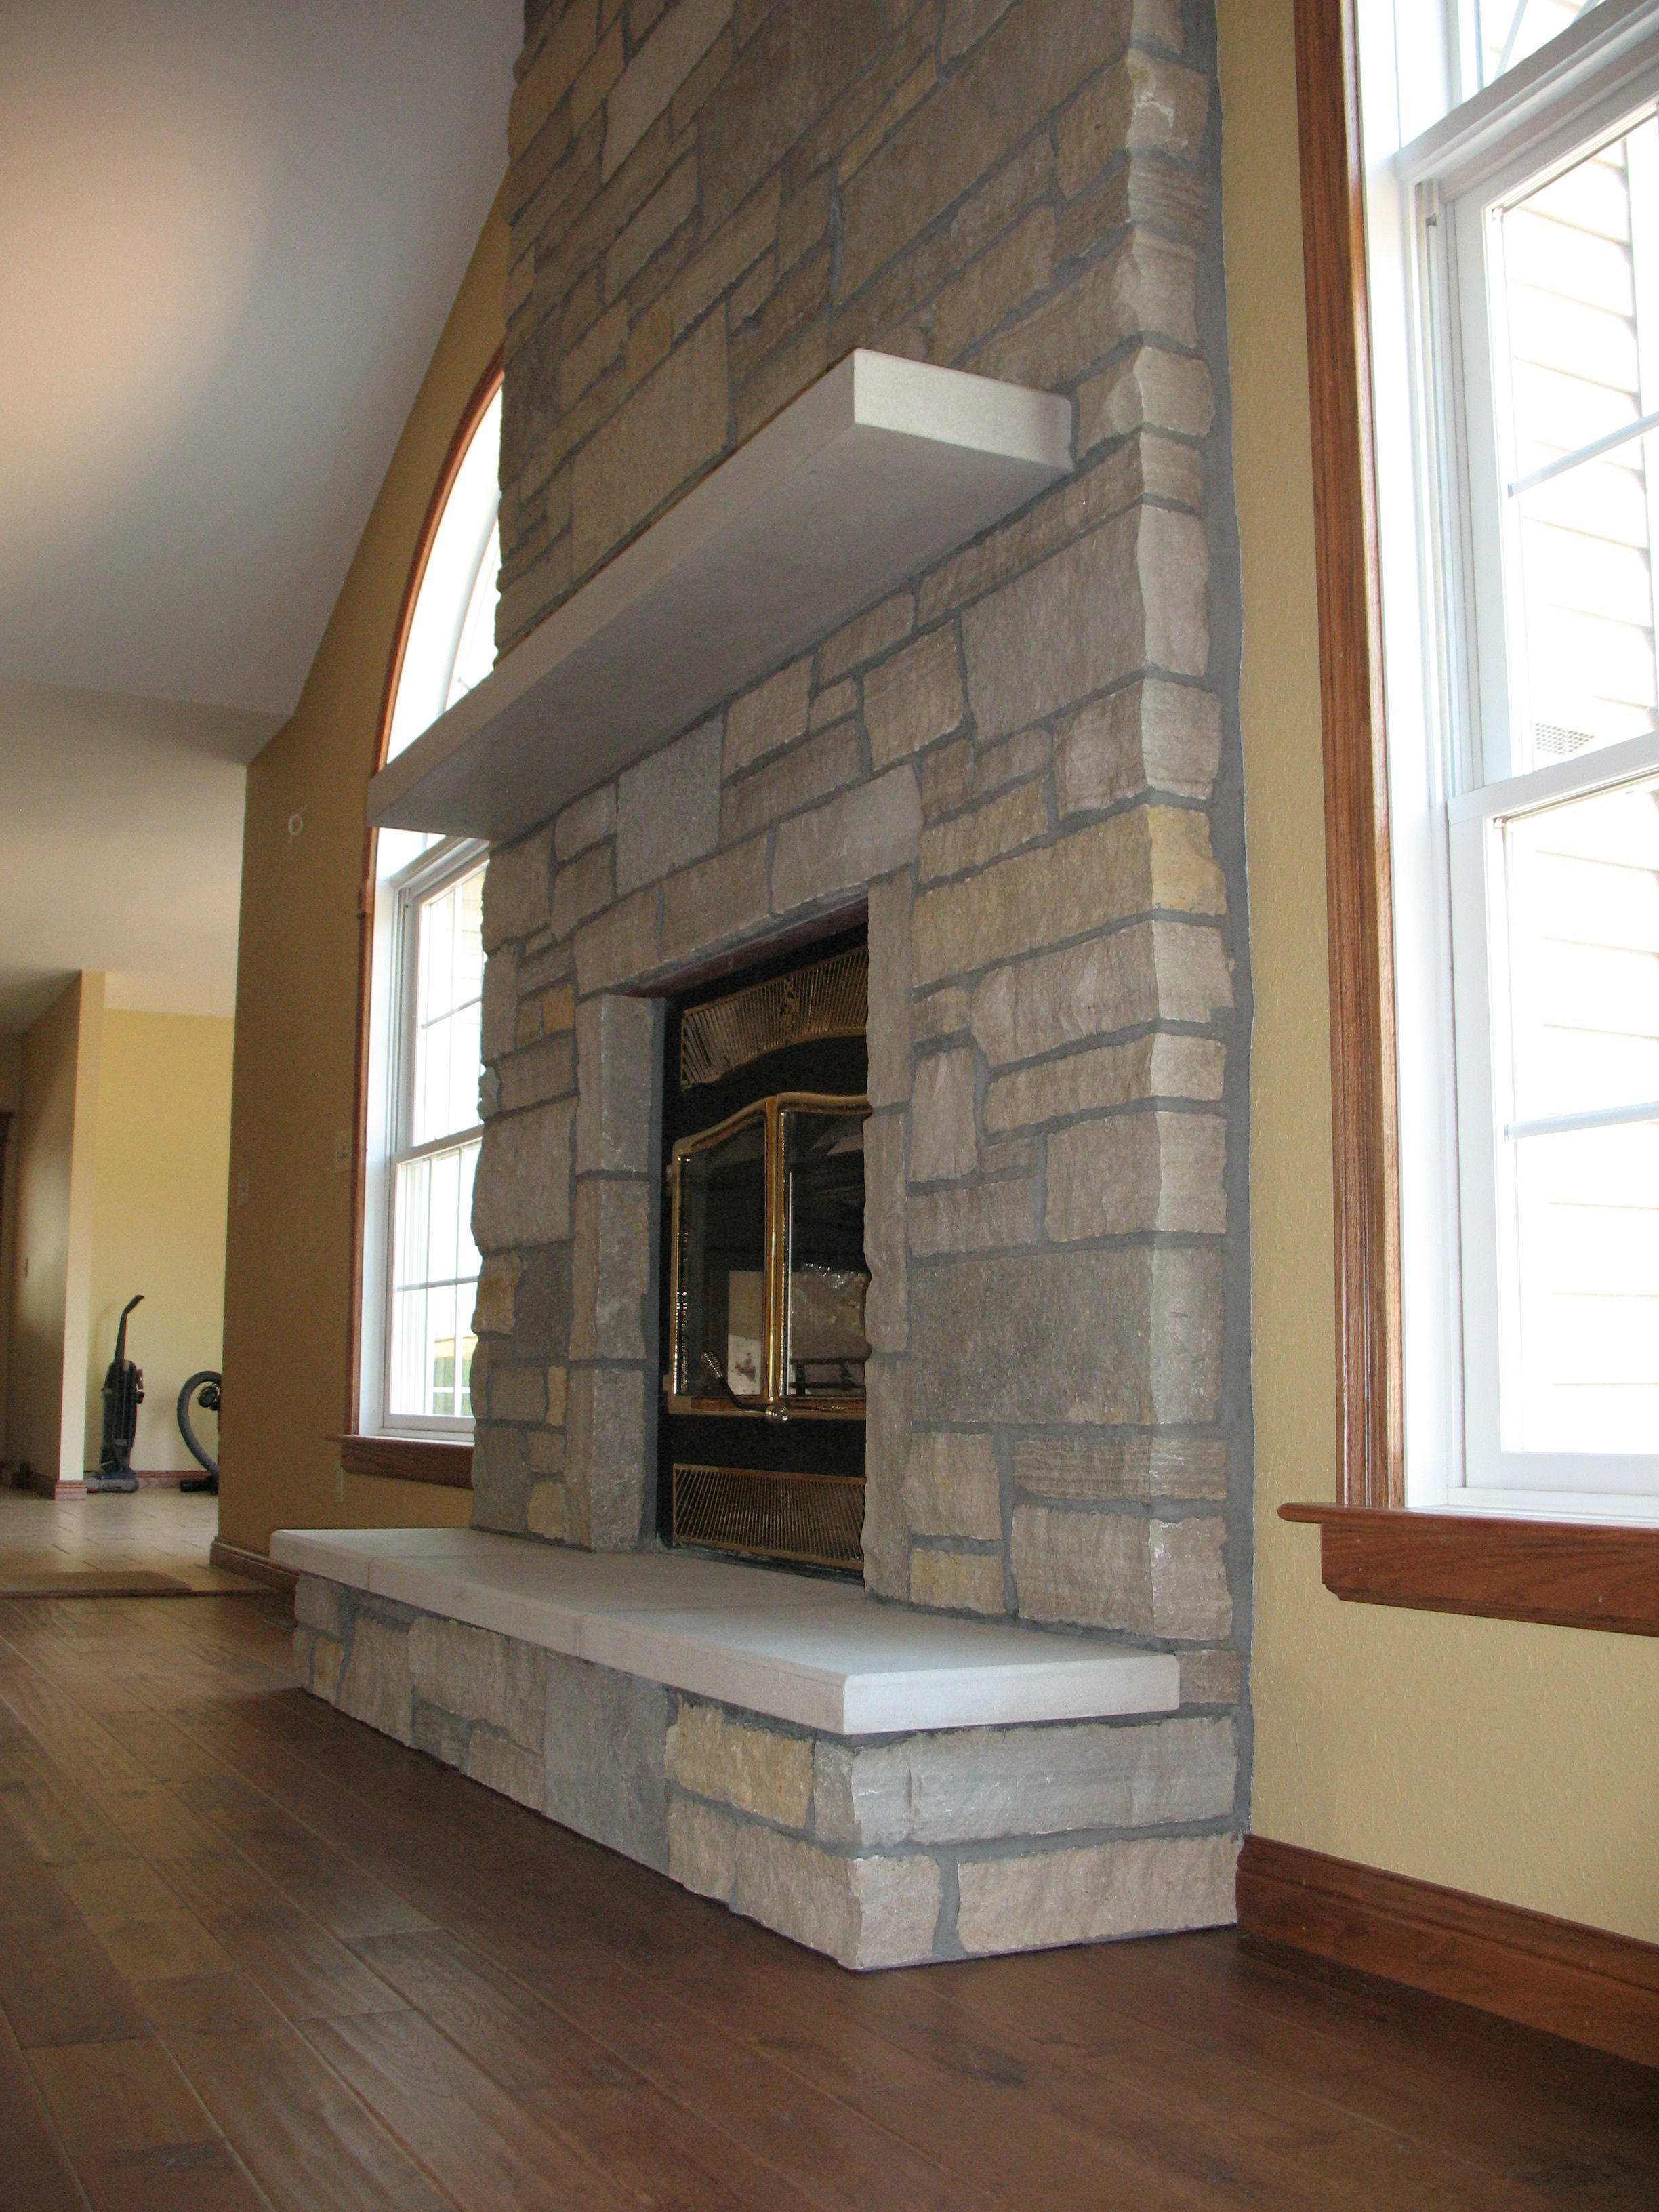 Stone Fireplace Renovation (View 12 of 12)